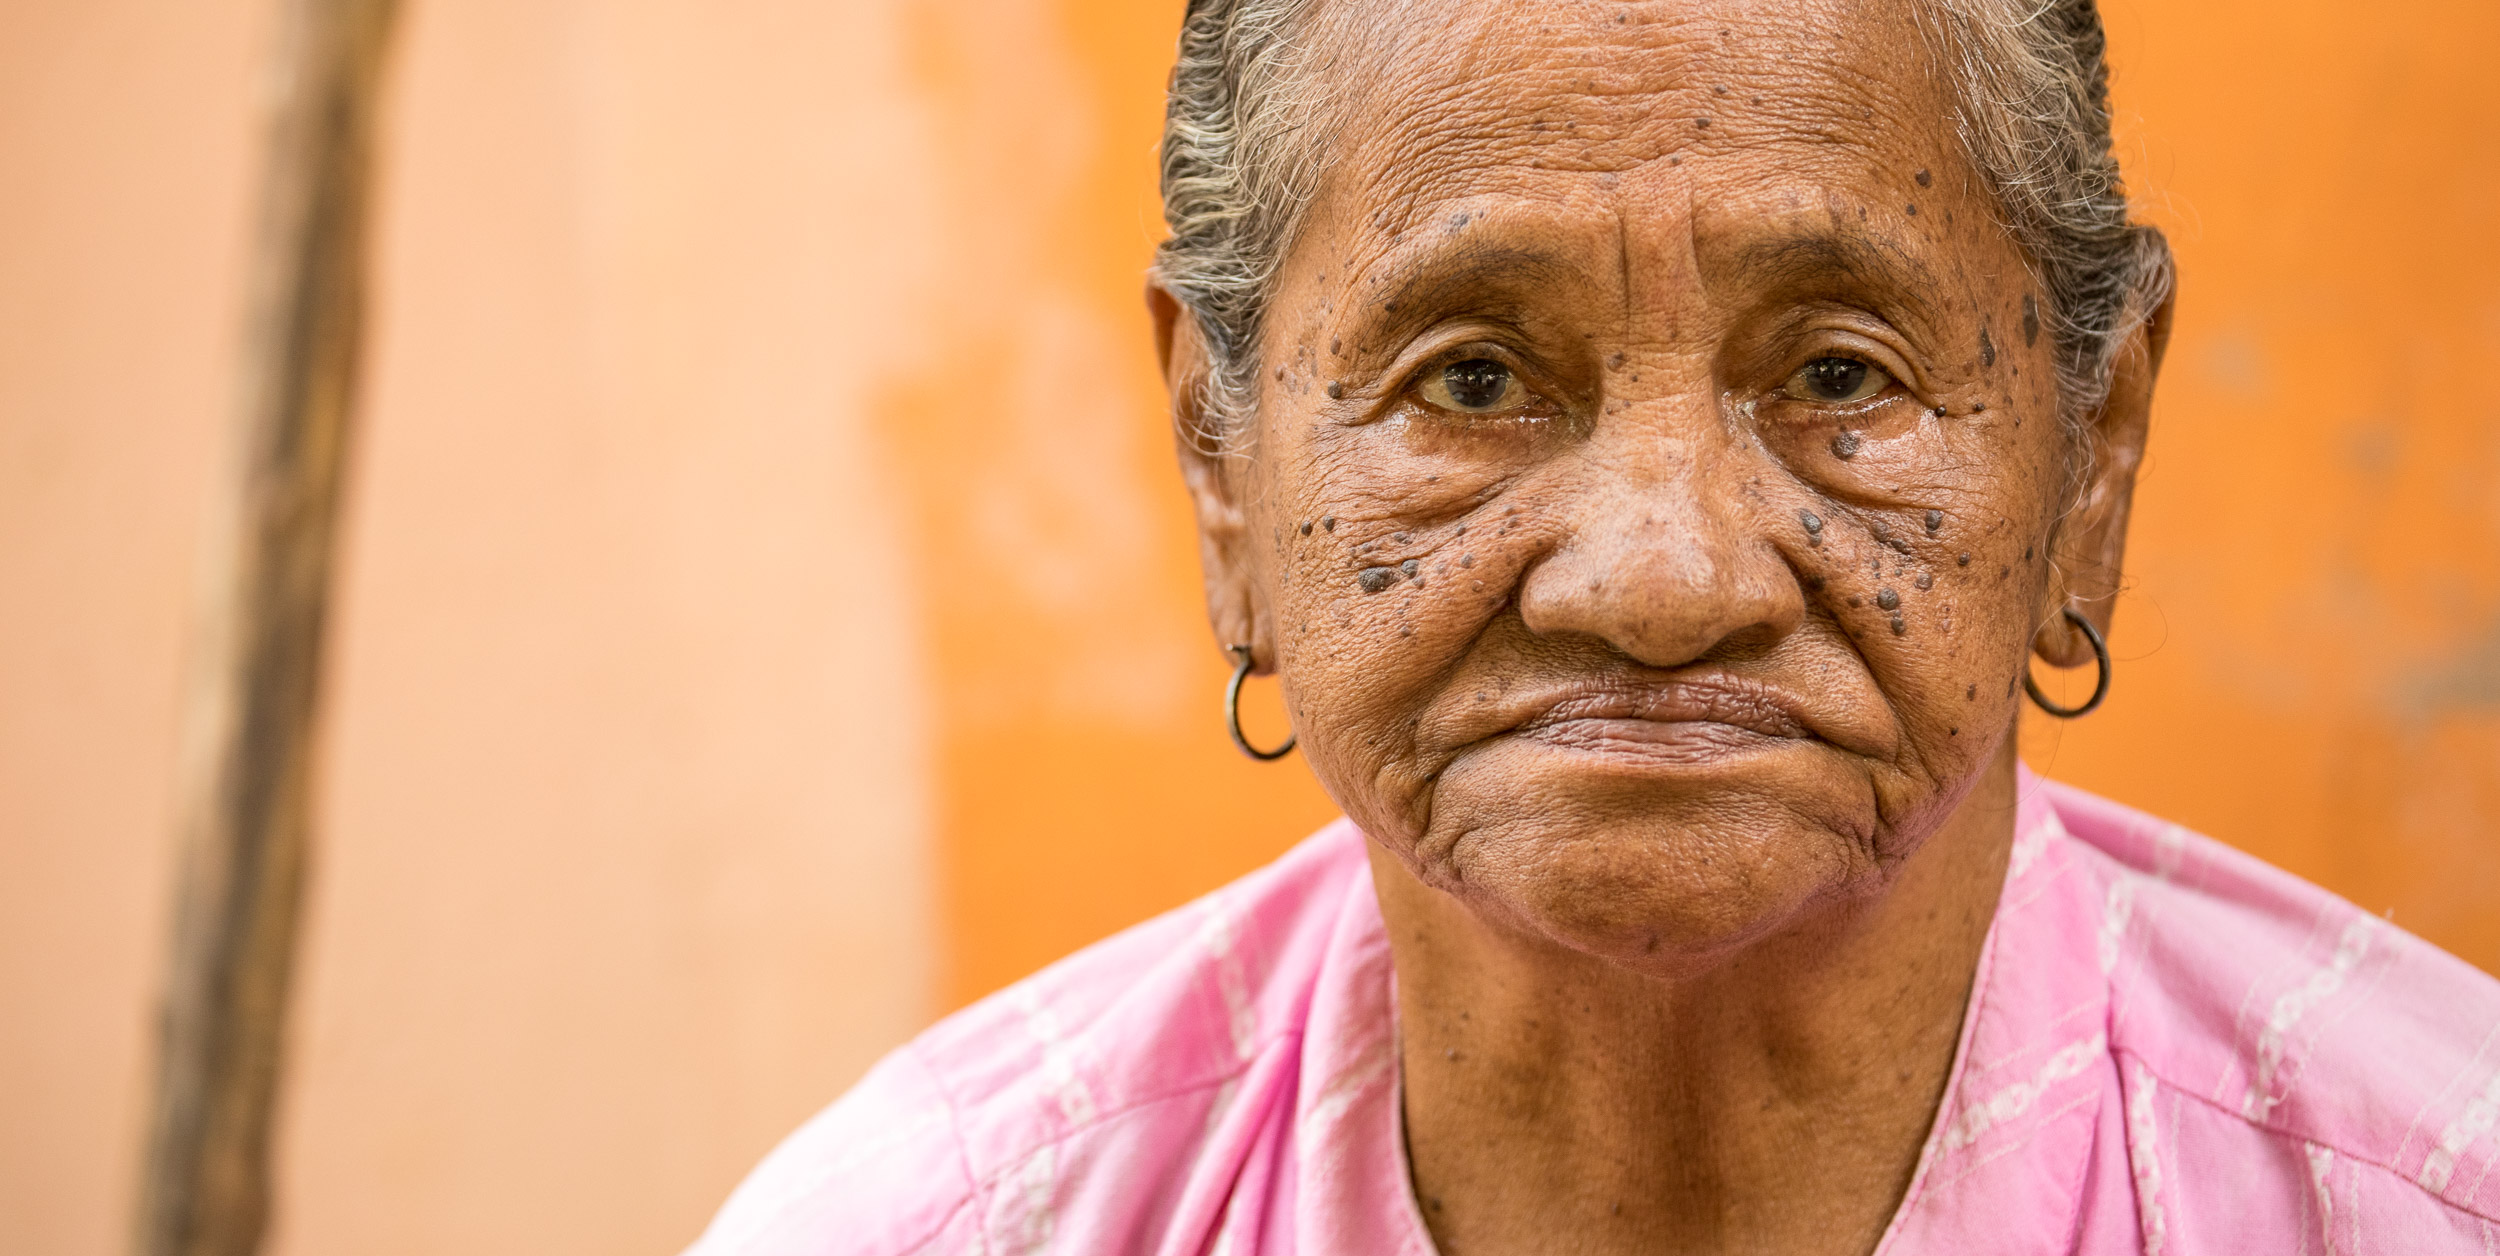 Colombia-Mompox-Old-Woman